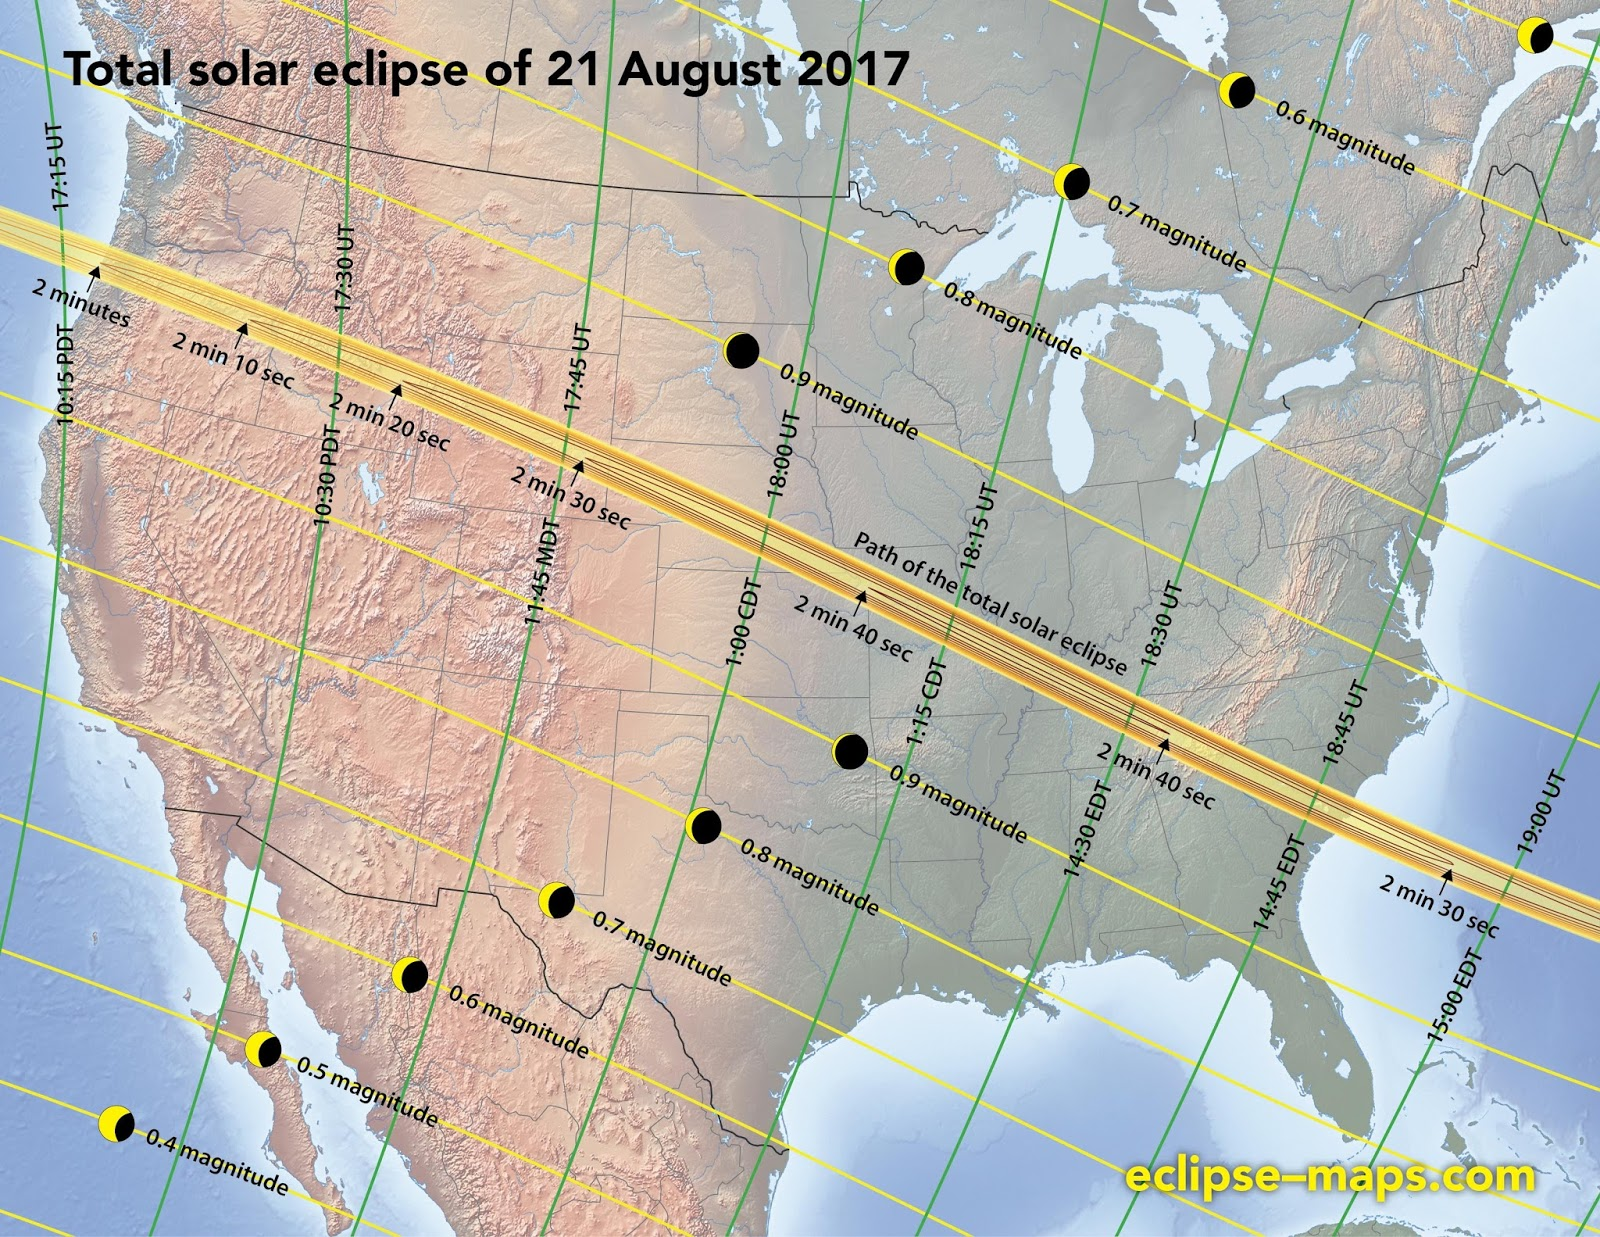 Total_solar_eclipse_21August2017